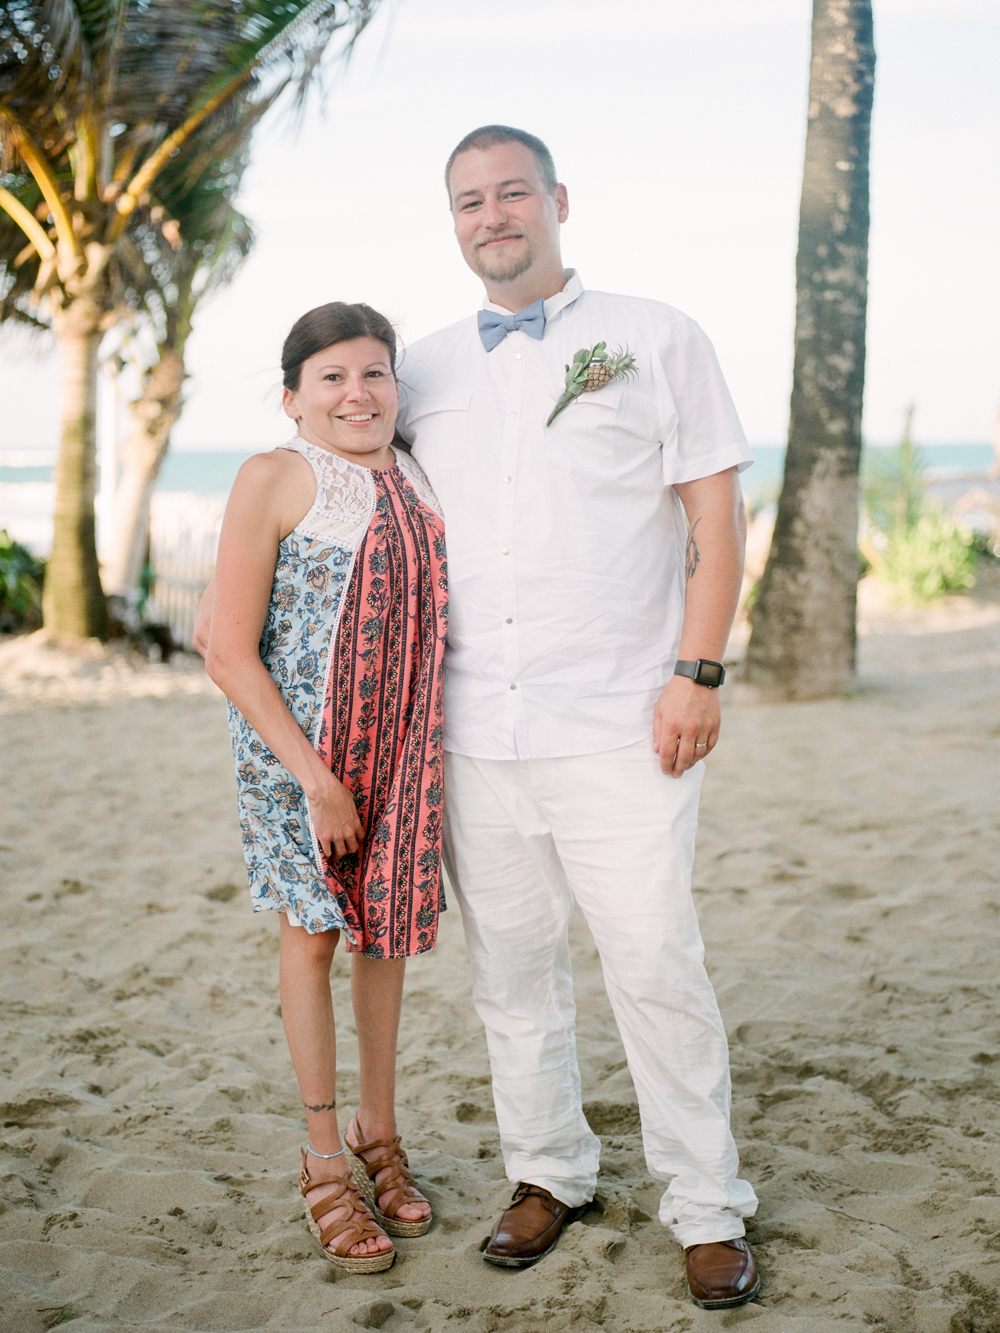 Christine Gosch - destination wedding photographer - Dominican republic wedding-75.jpg